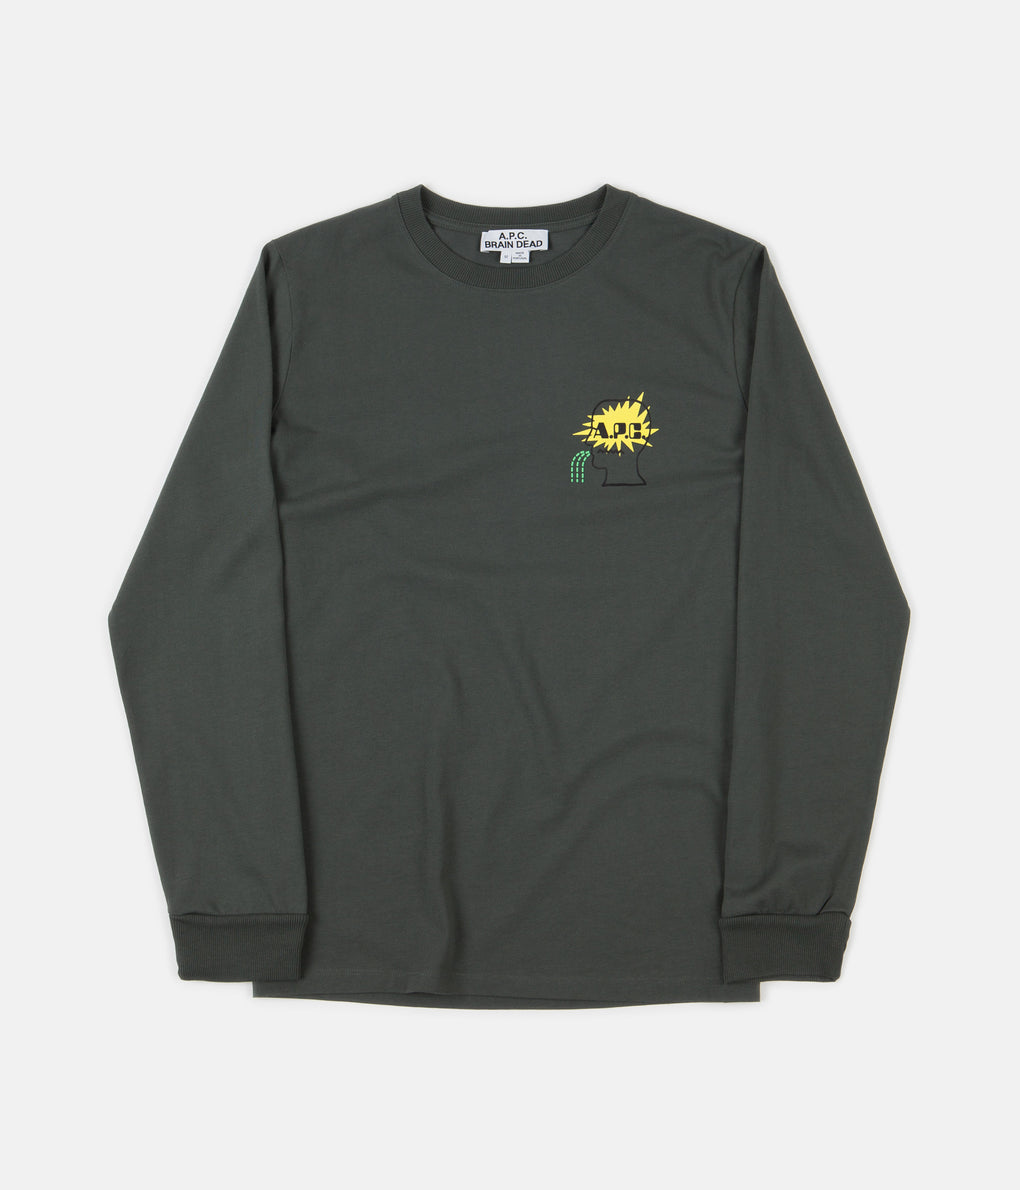 A.P.C. x Brain Dead Molly Long Sleeve T-Shirt - Green / Grey